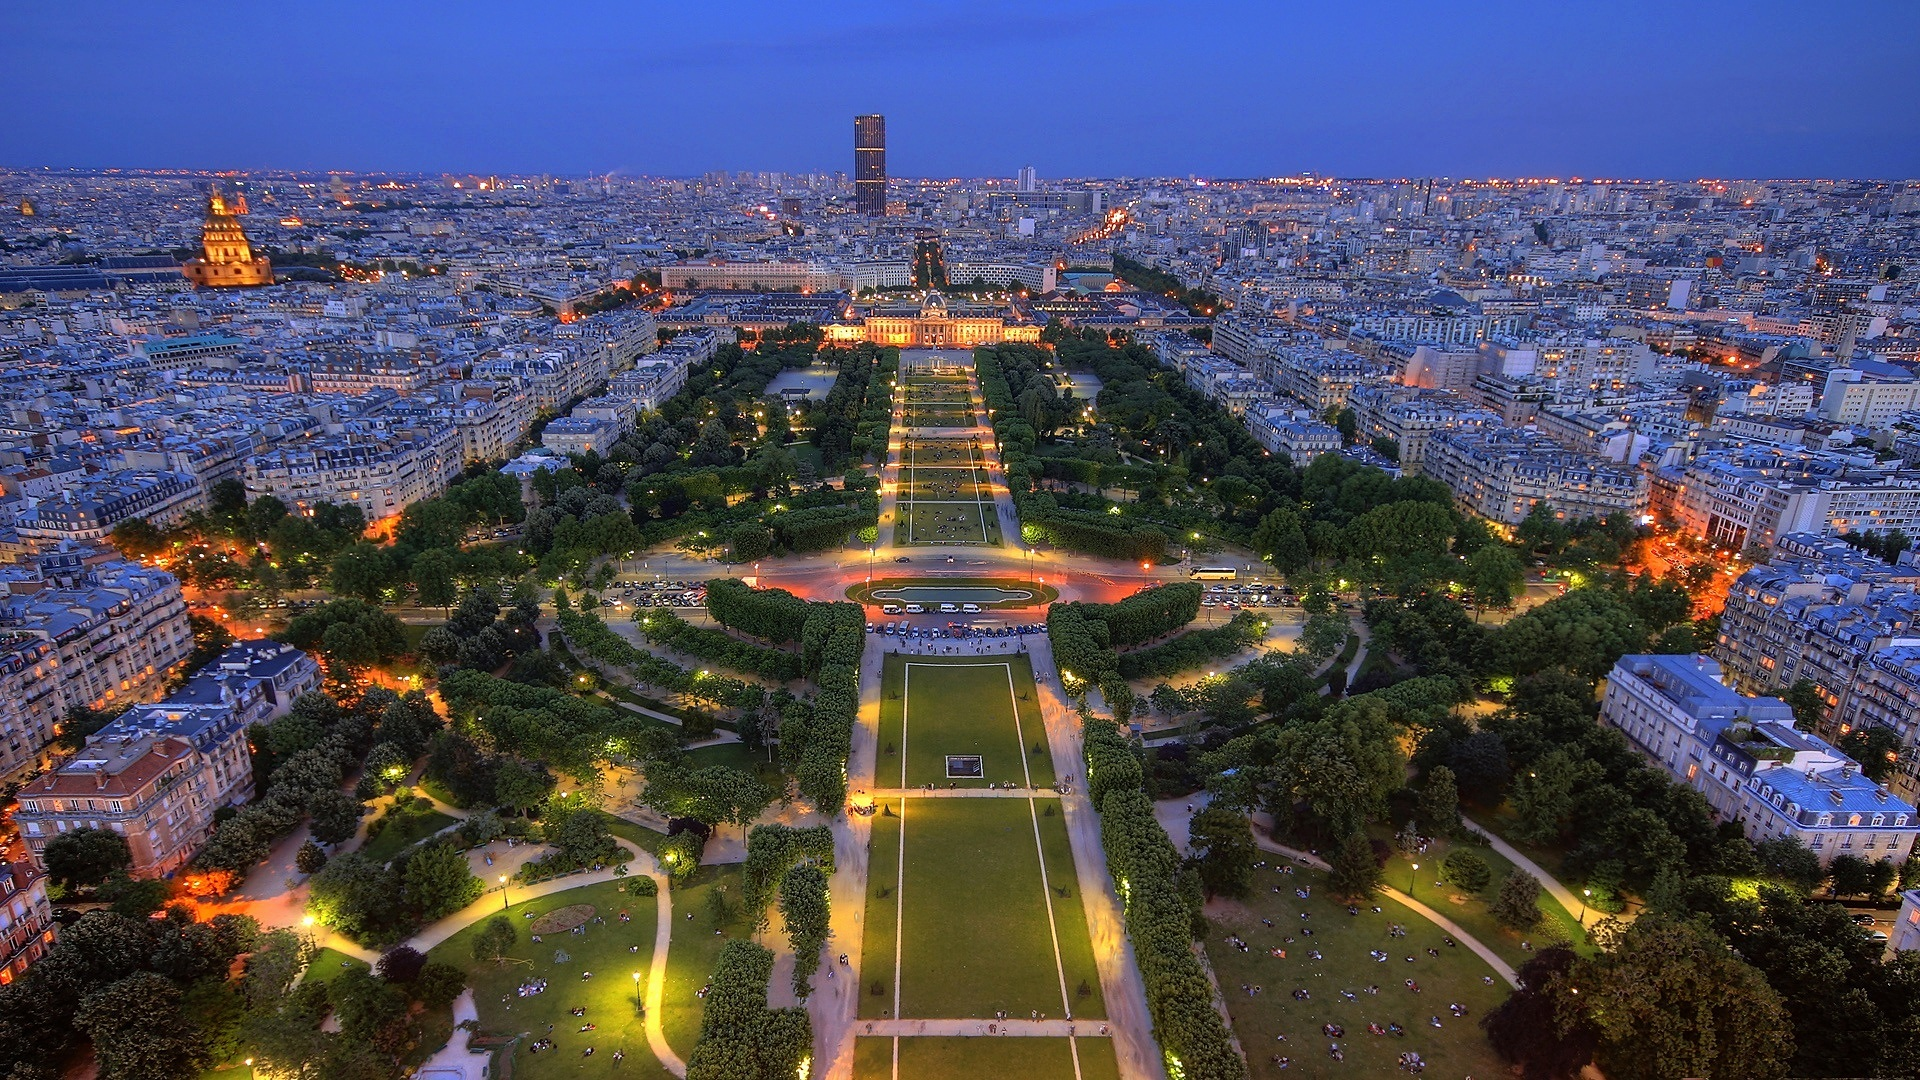 The view of the  Champs de Mars  from the Eiffel Tower